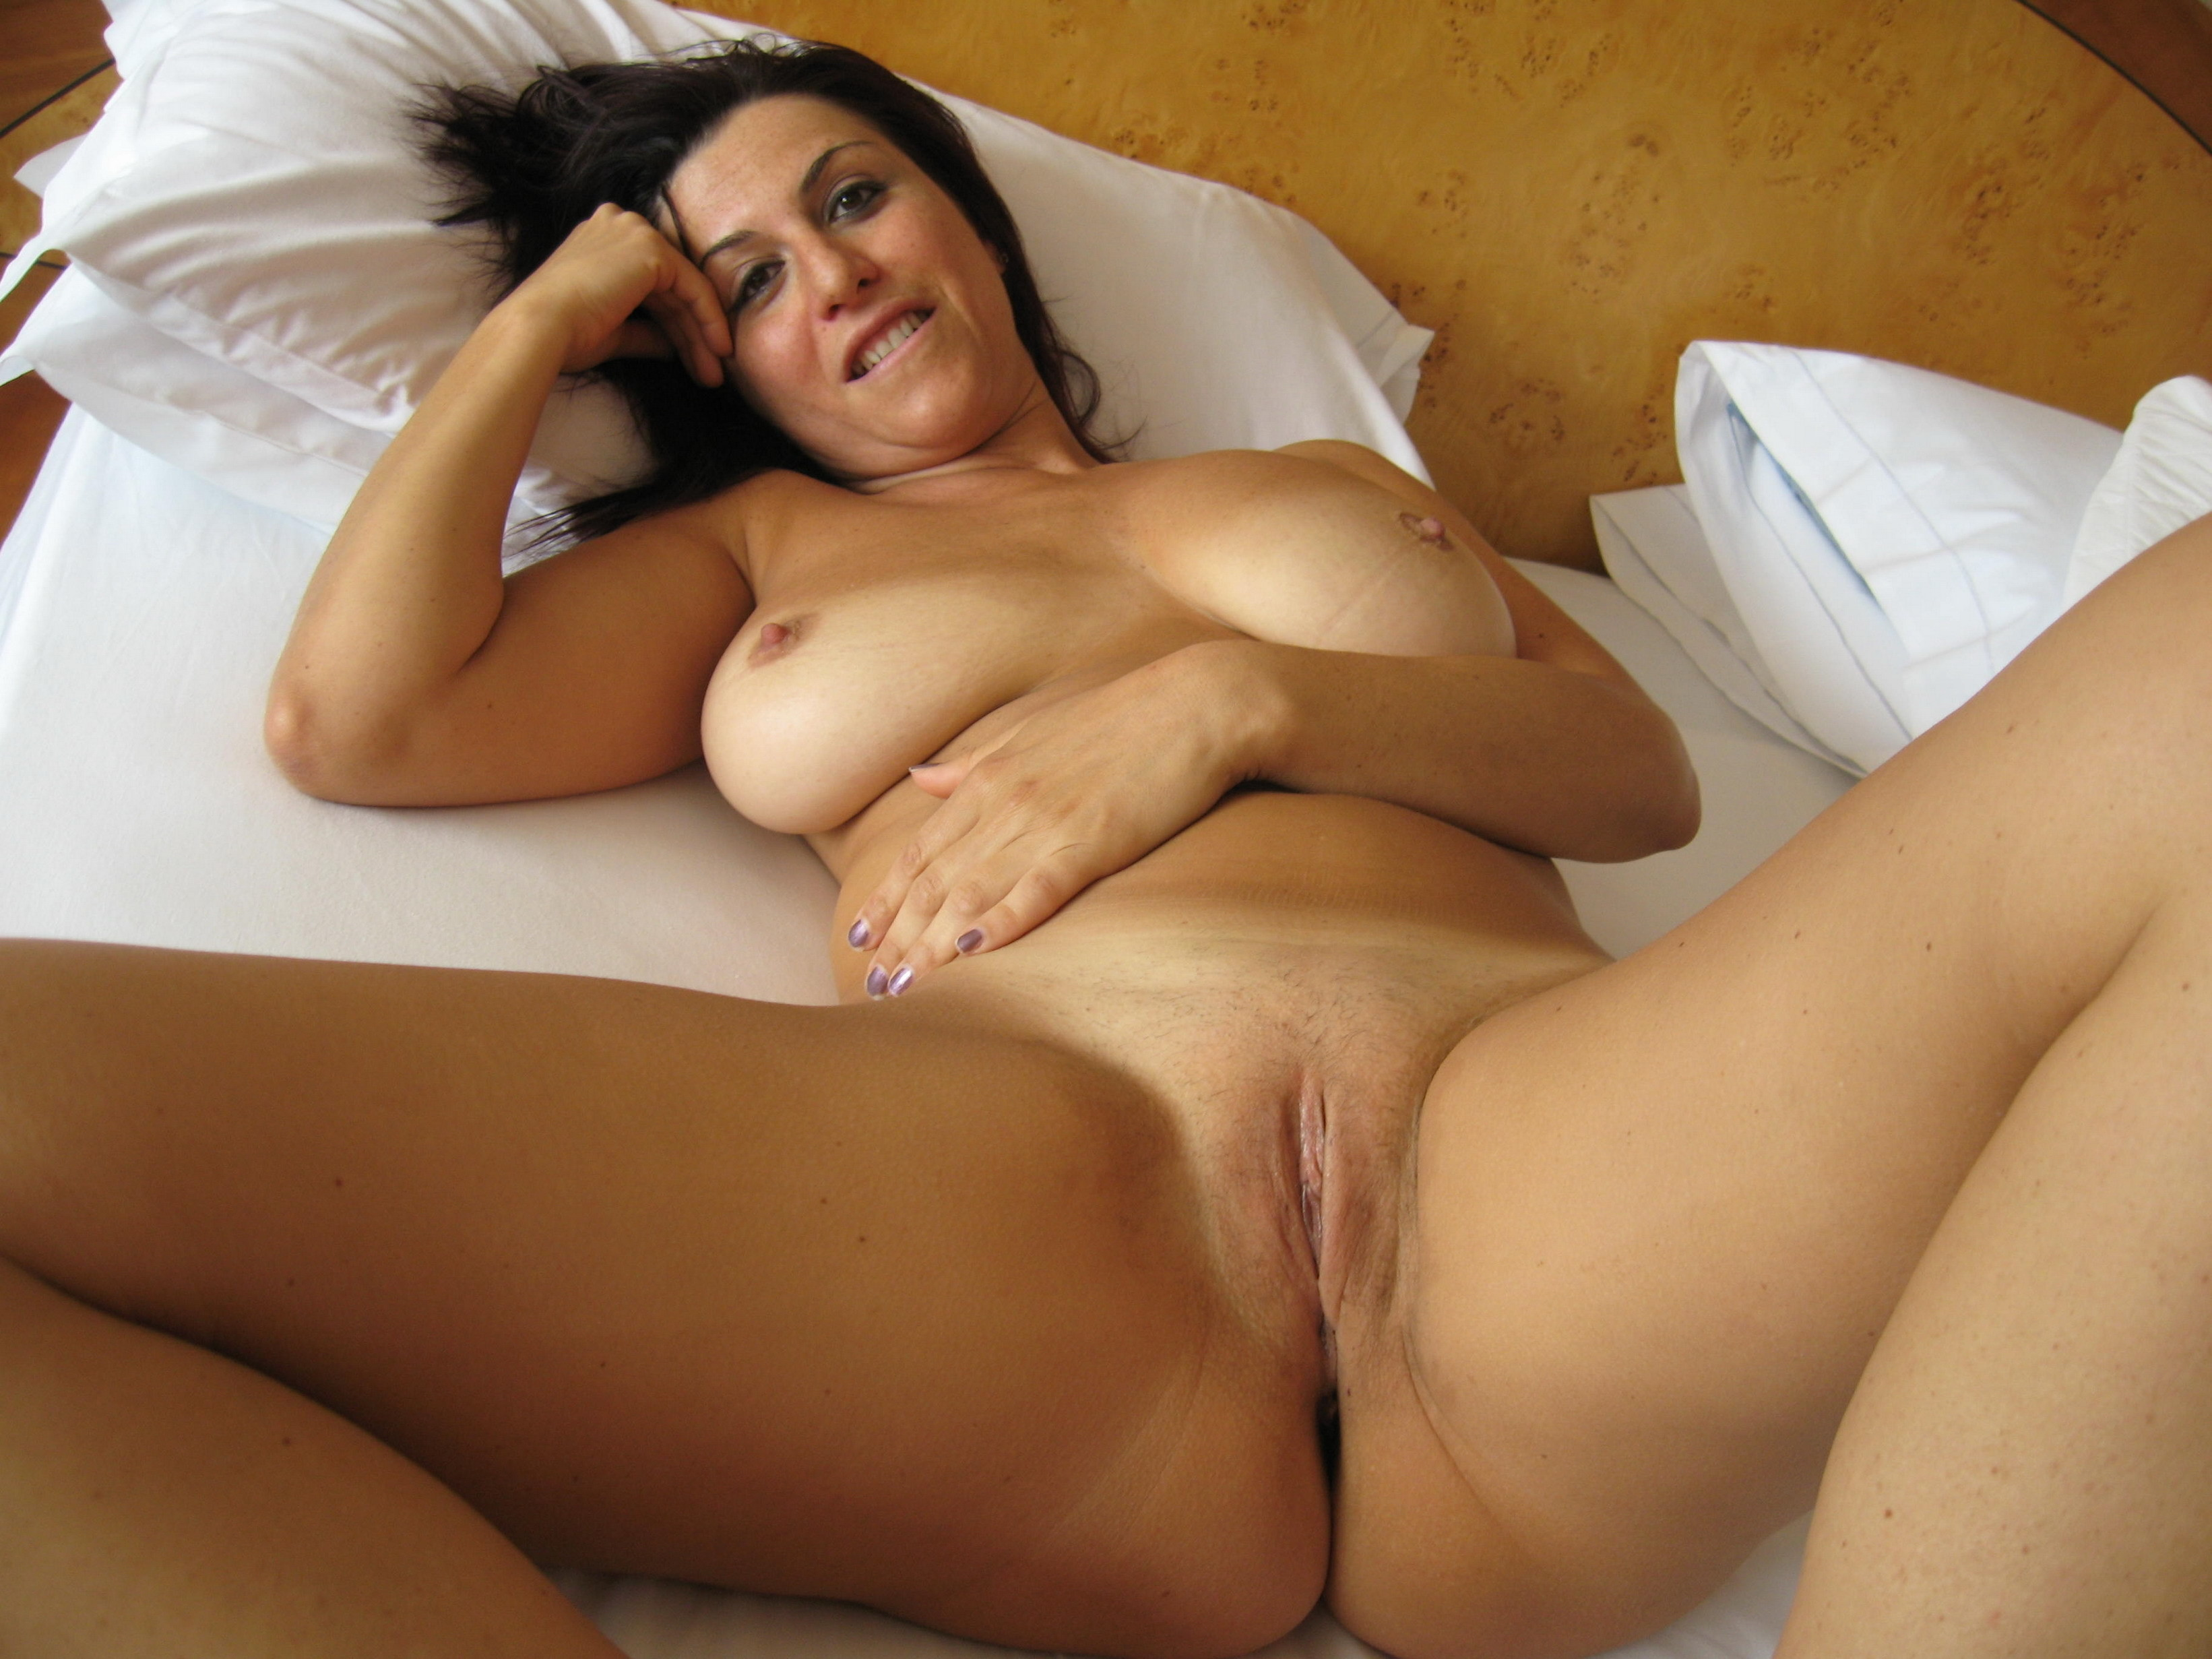 Mom daughter fingering each other